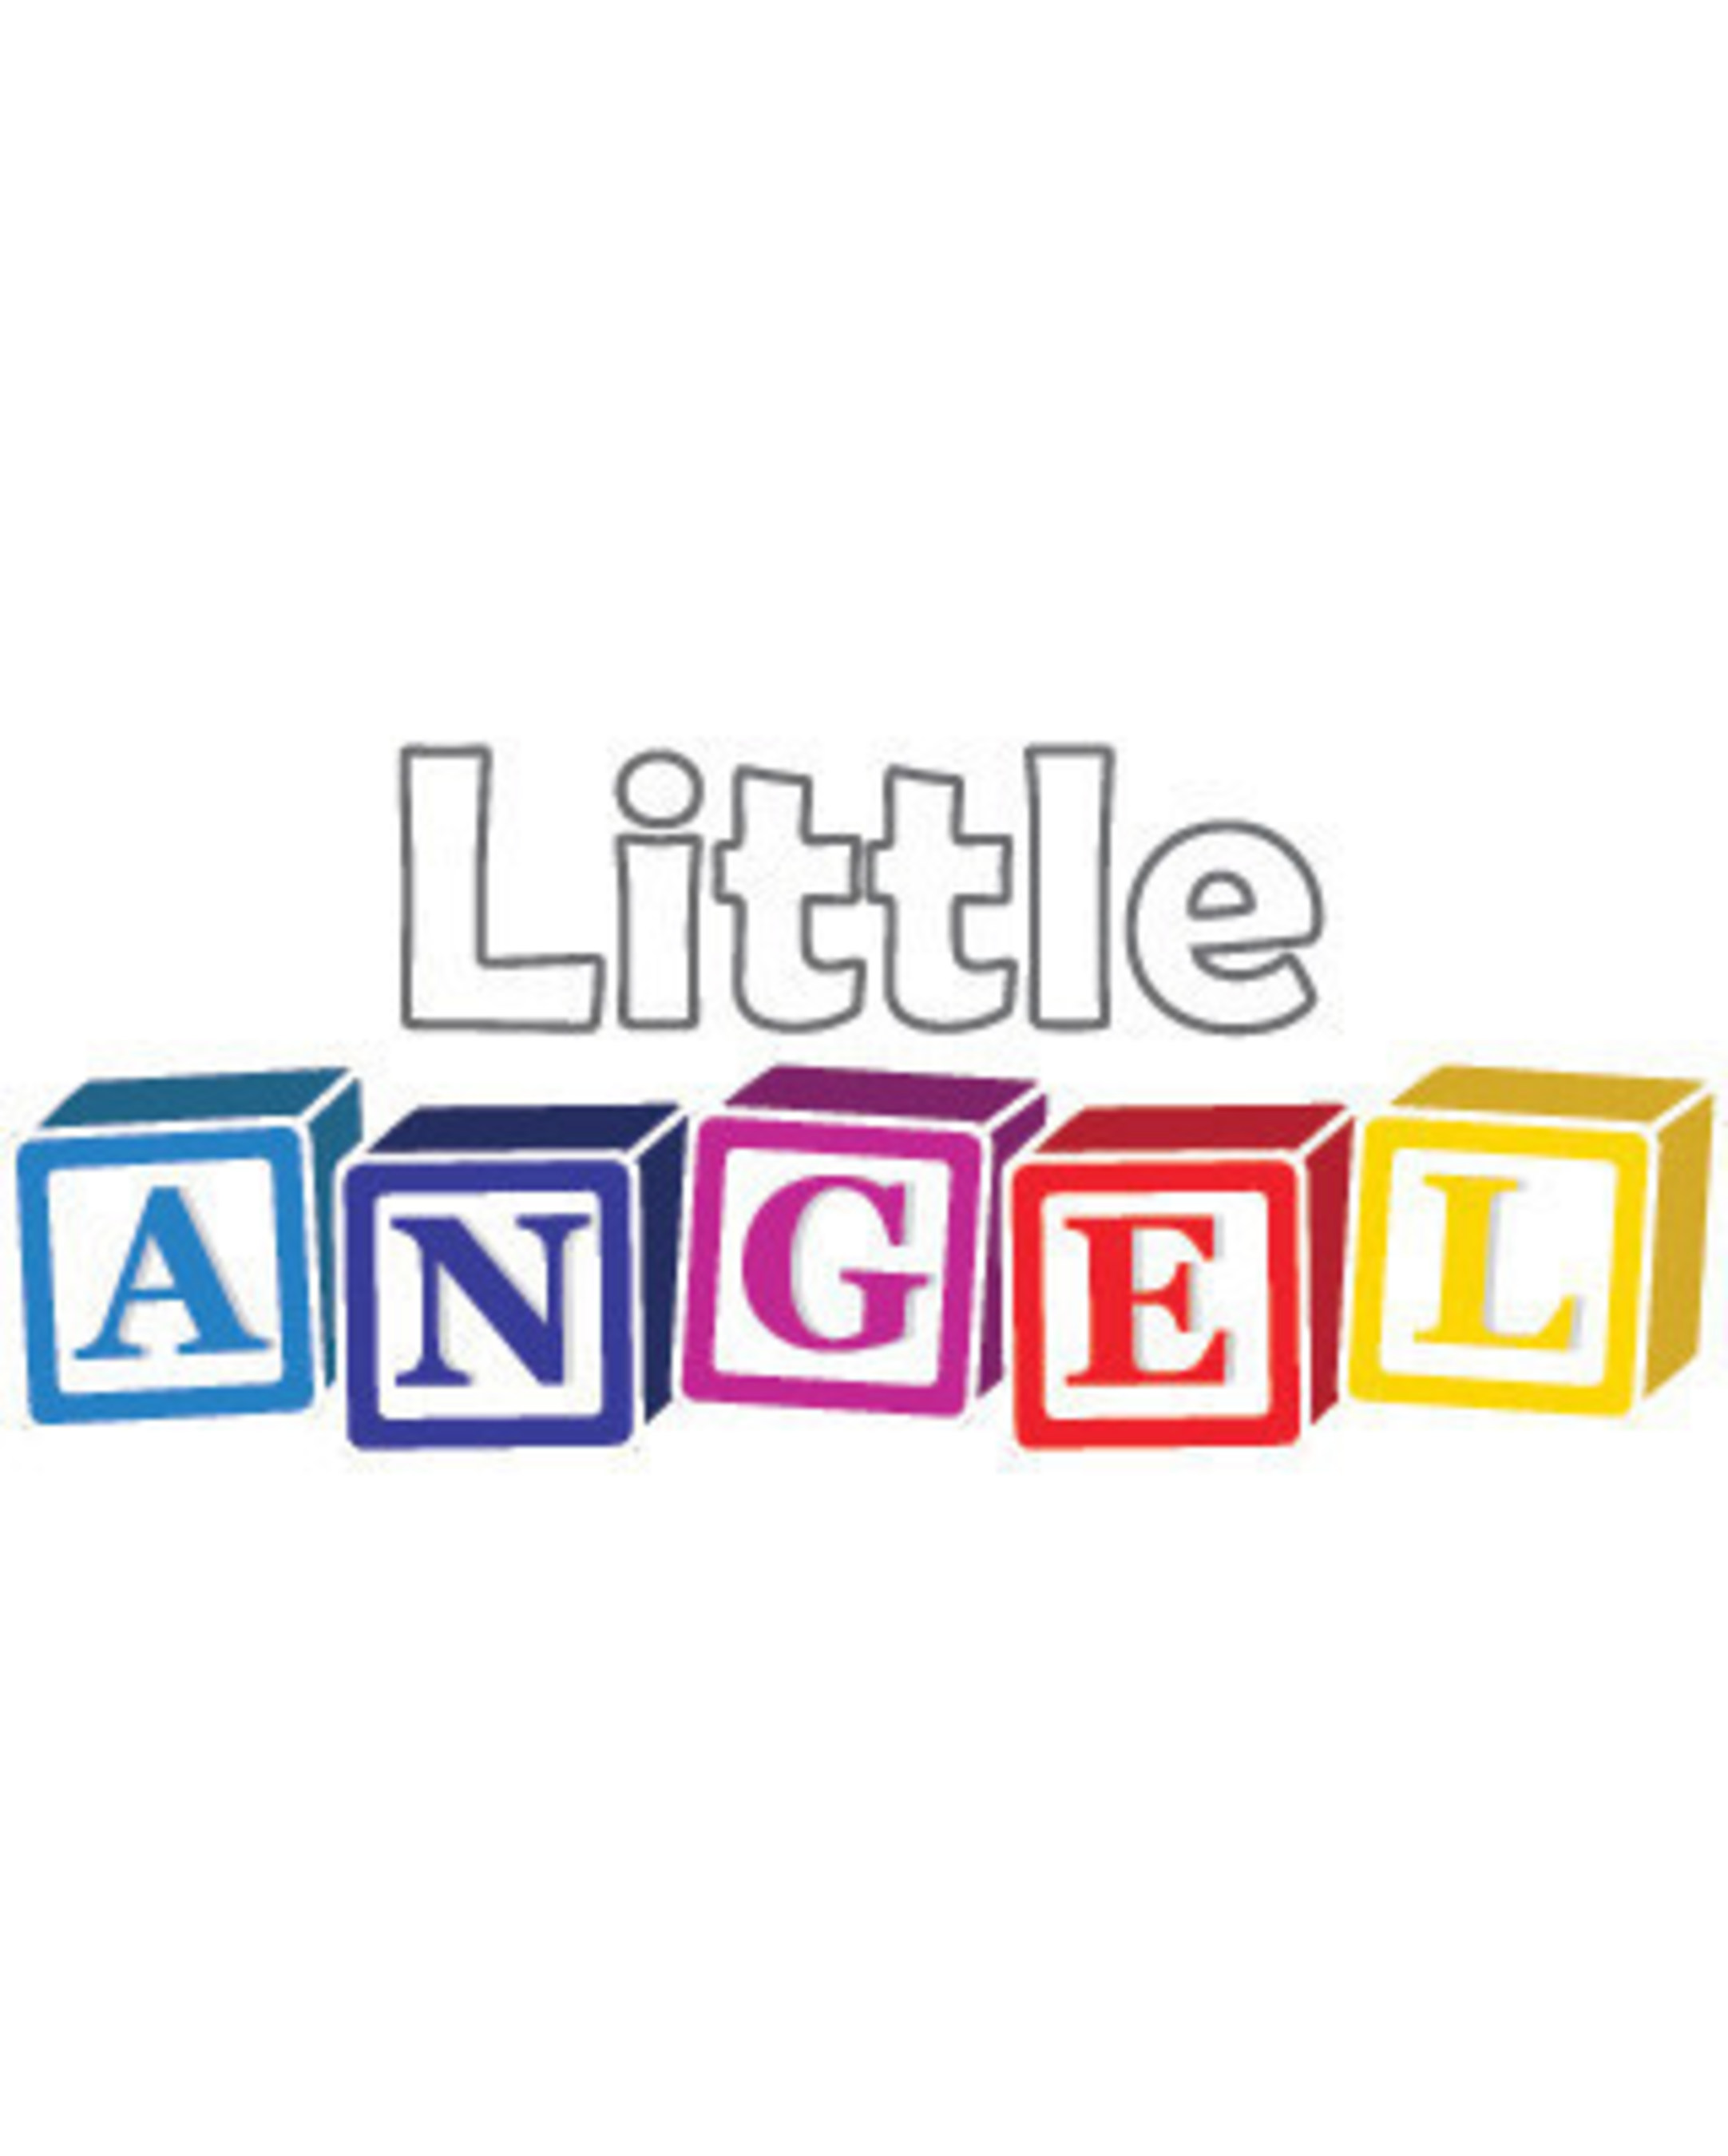 Valnet Launches Little Angel, an Animated YouTube Channel